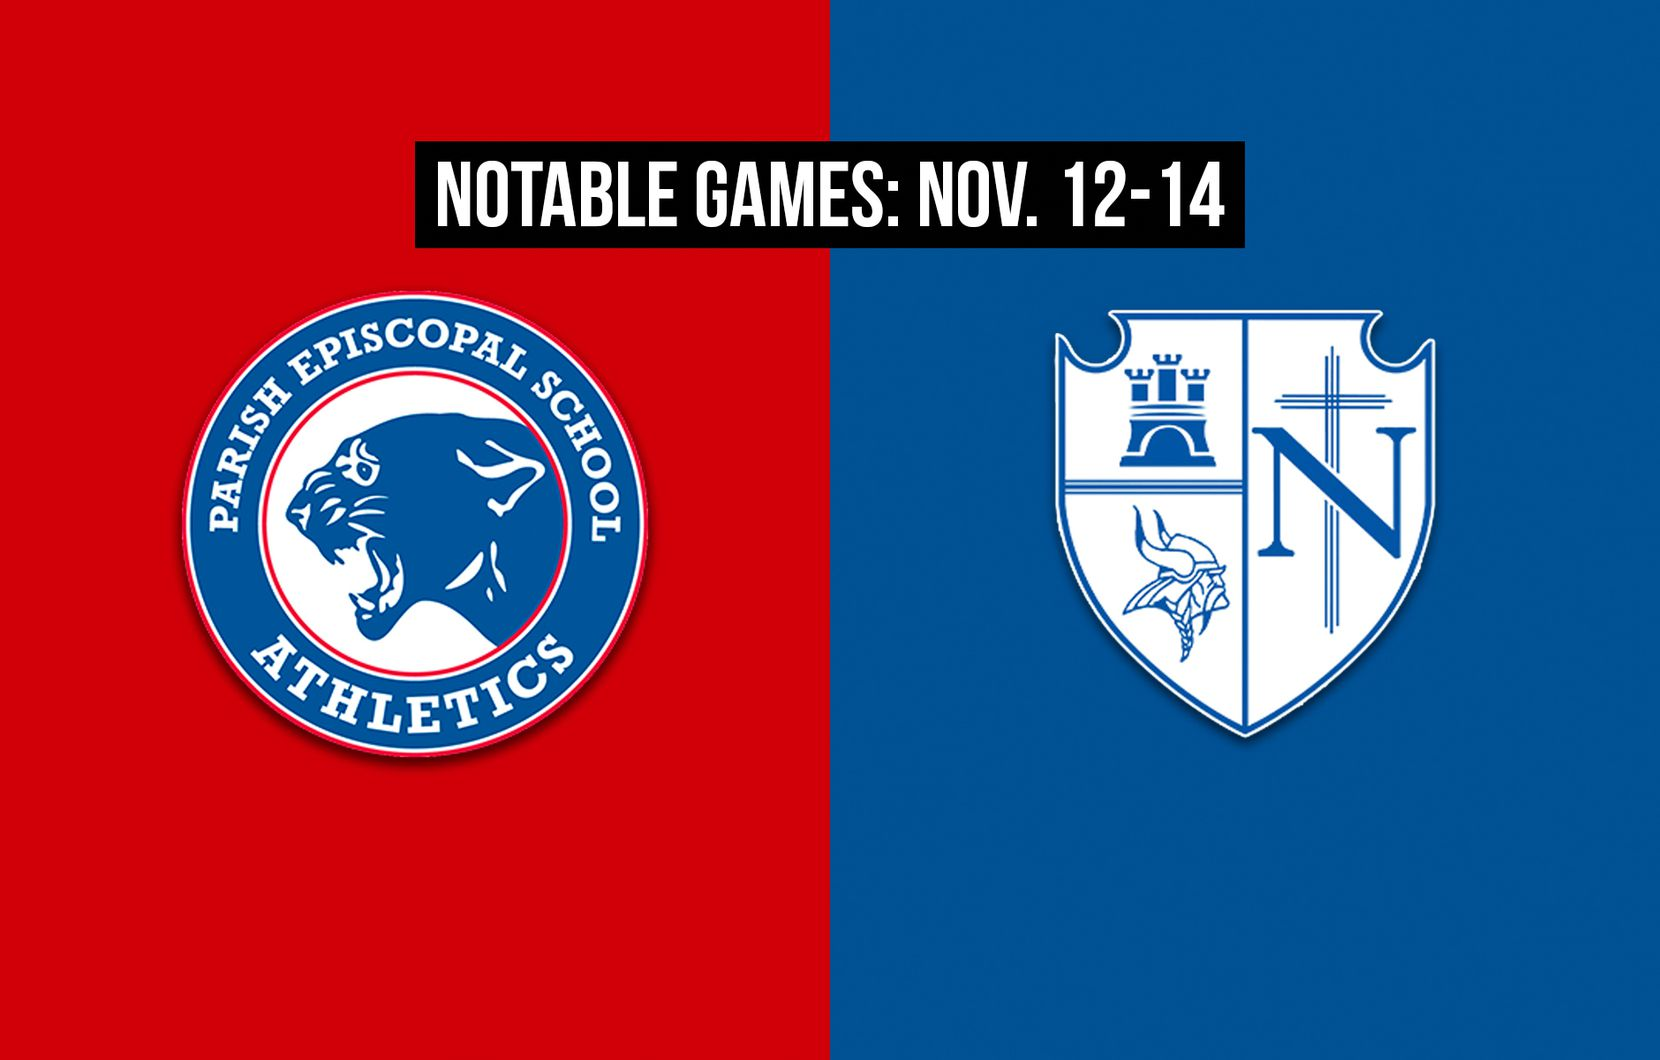 Notable games for the week of Nov. 12-14 of the 2020 season: Parish Episcopal vs. Fort Worth Nolan.